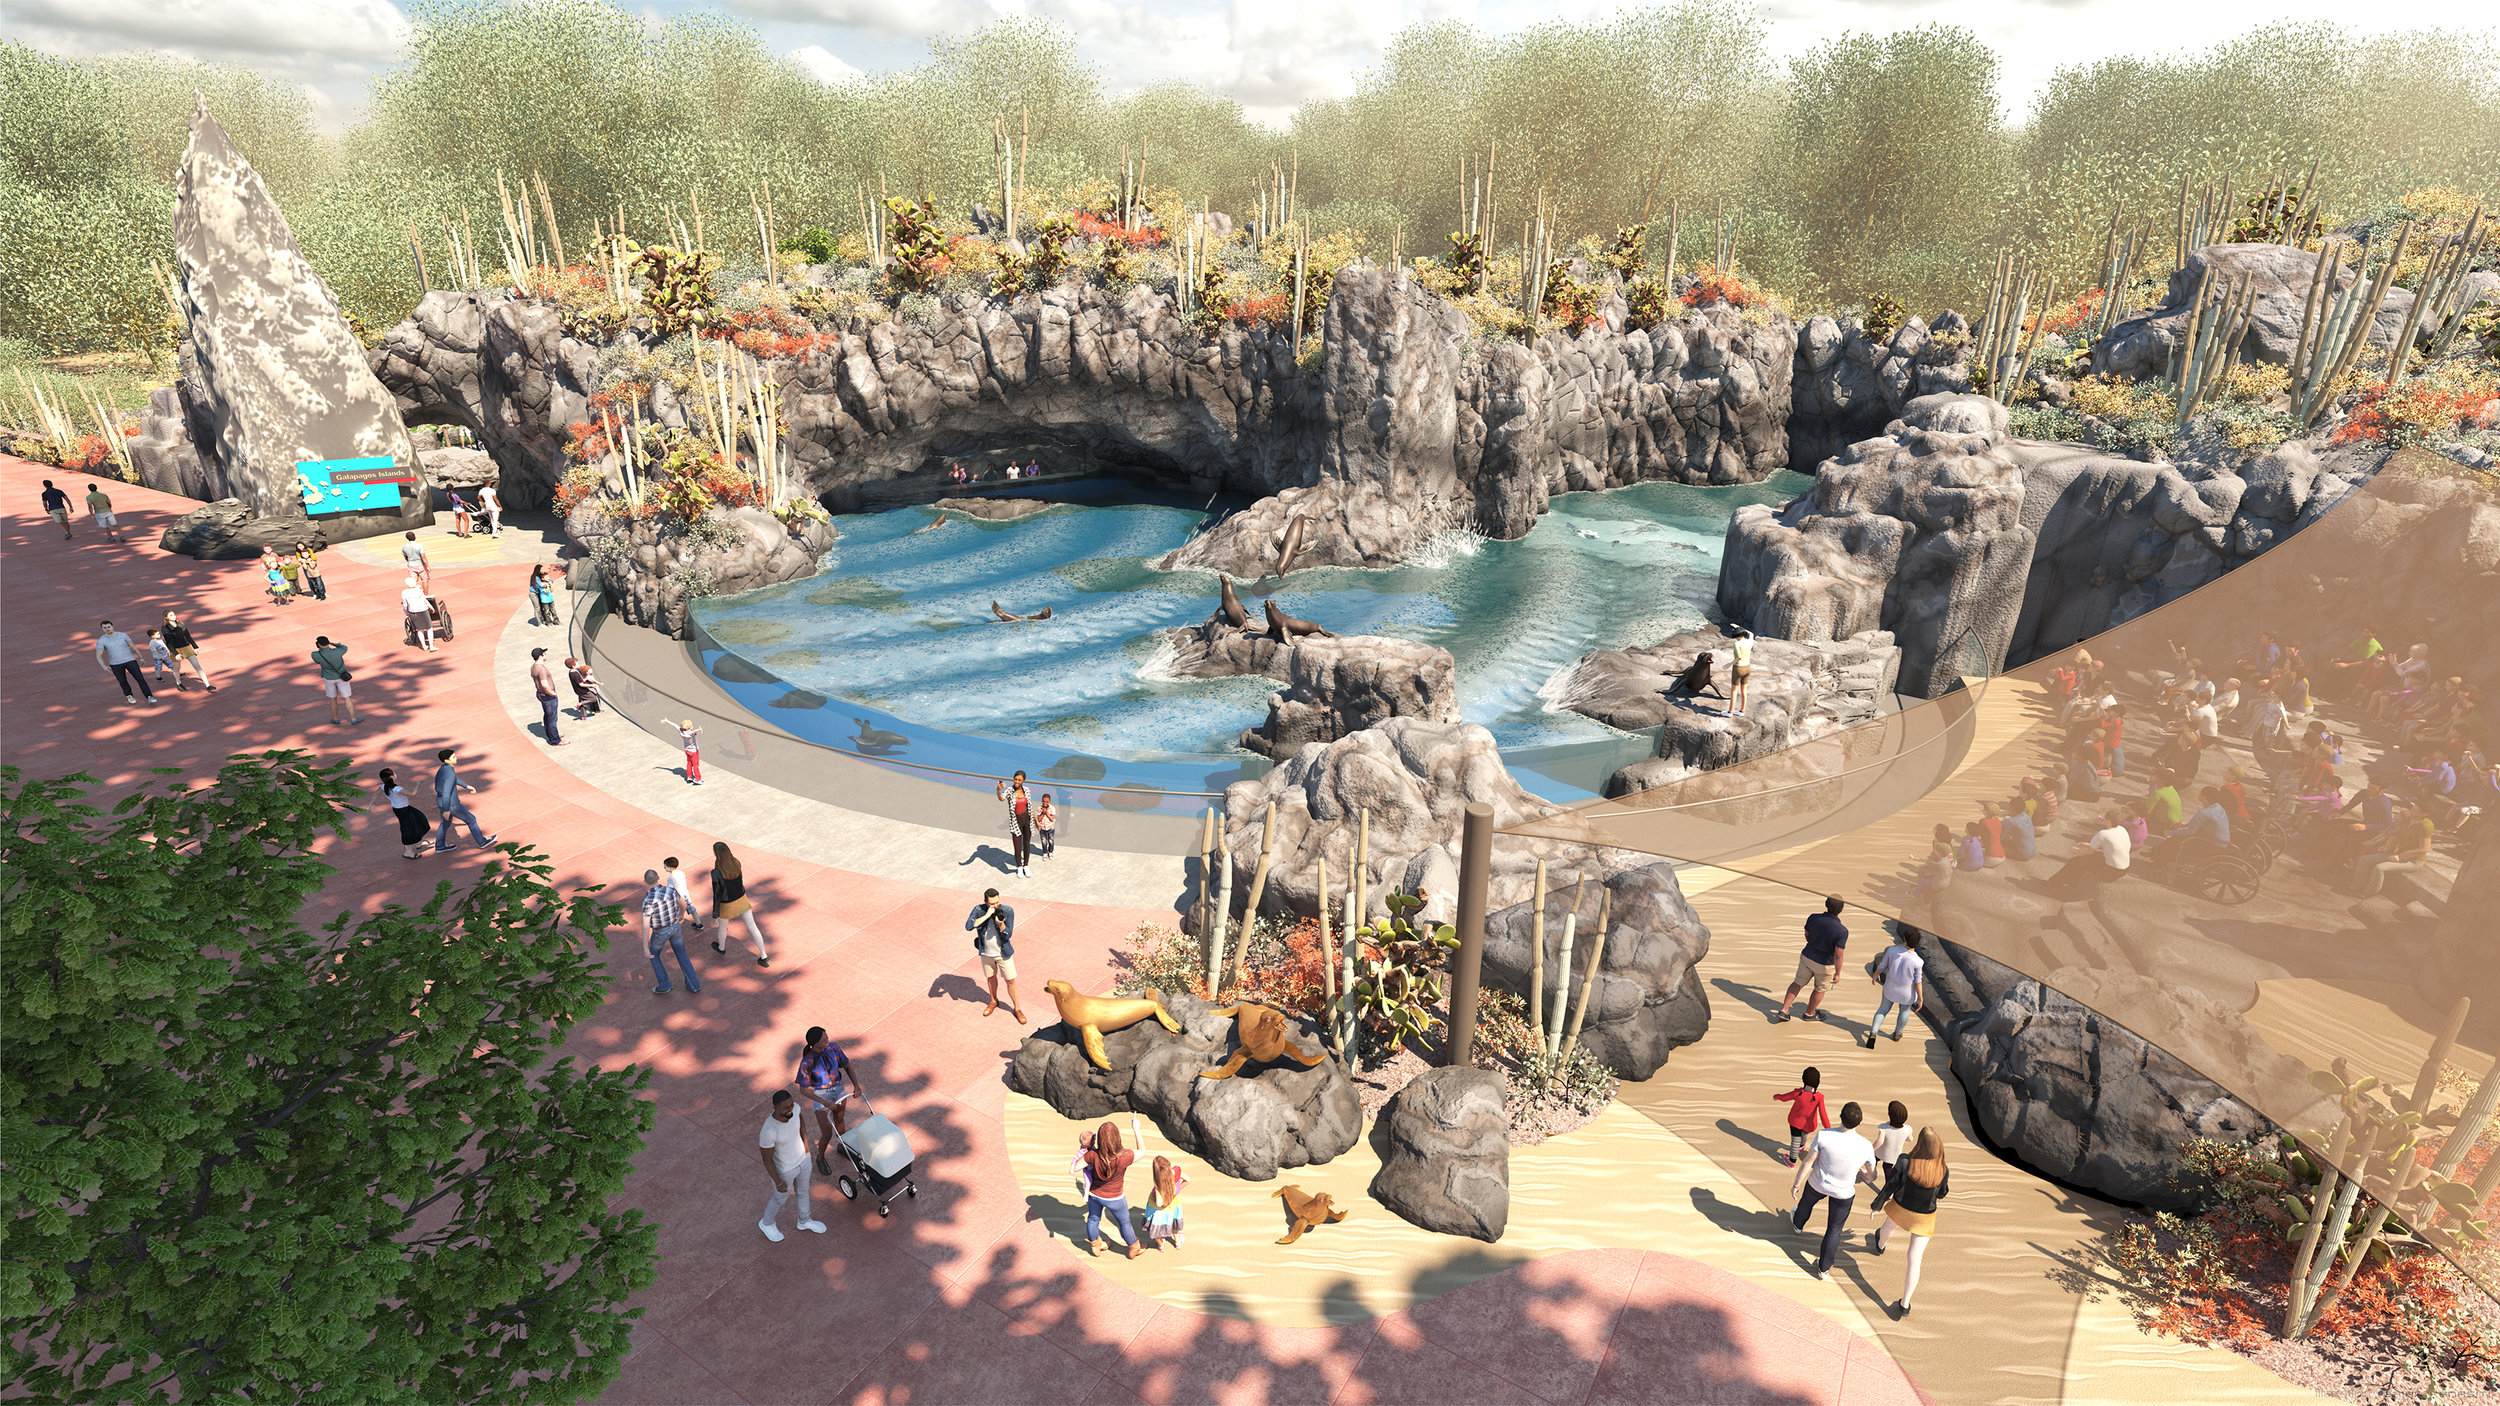 Houston Zoo sea lion exhibit rendering